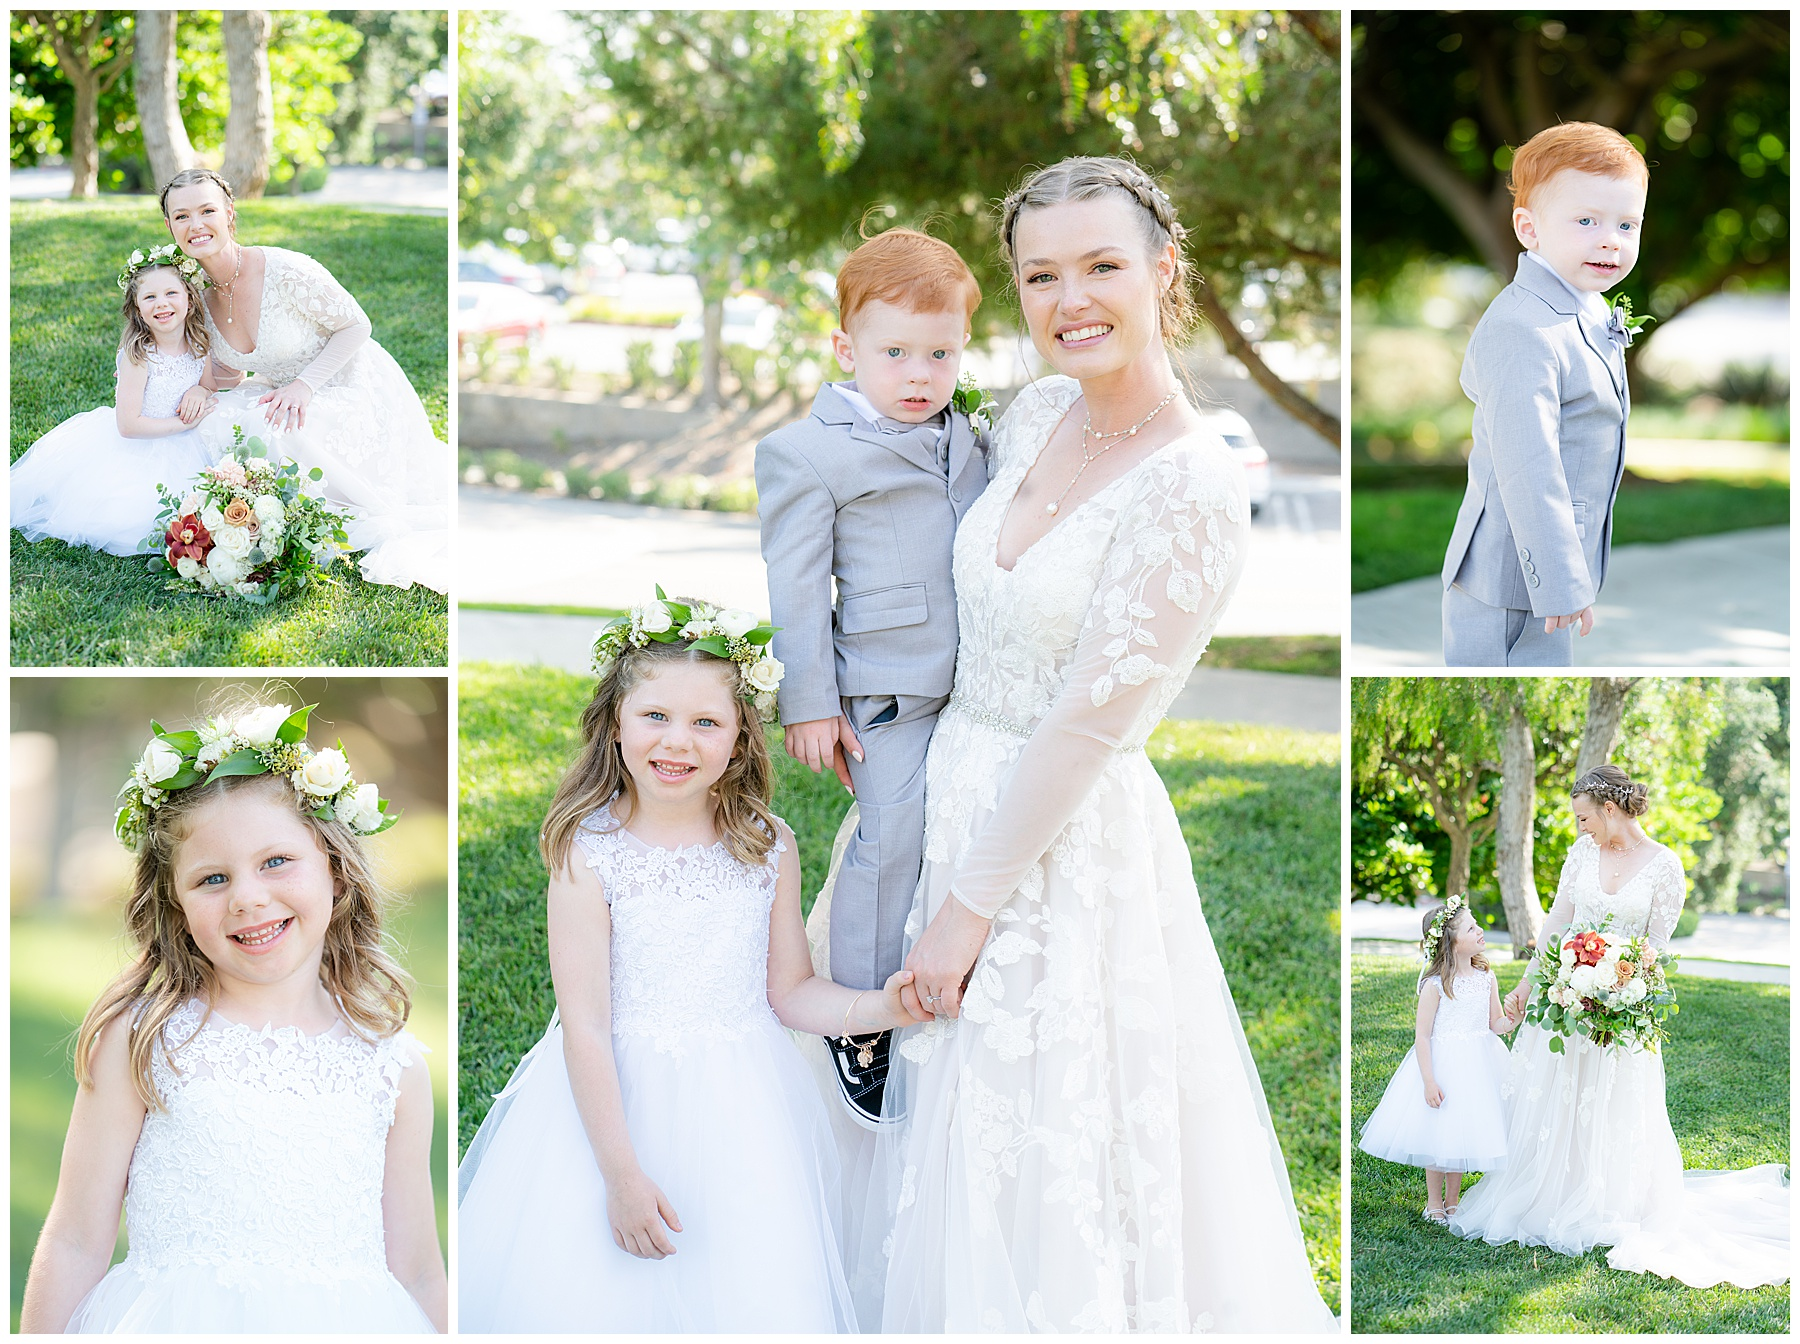 ring bearer and flower girl pose with bride